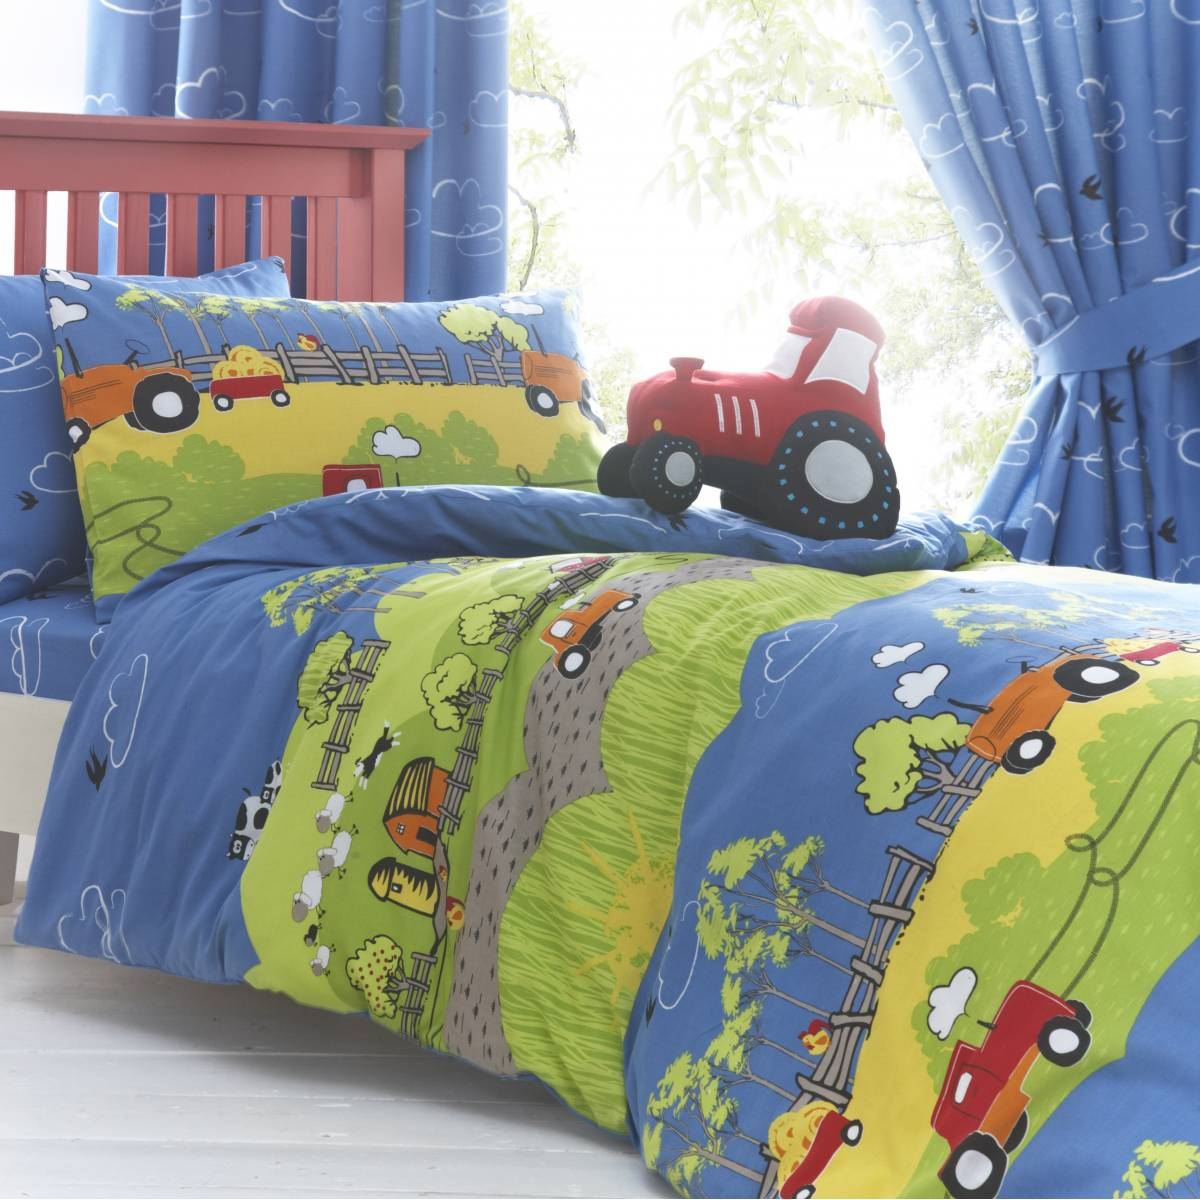 Kids Bedroom Bedding Boys Or Girls Duvet Quilt Cover Sets Childrens Bedding Kids Single